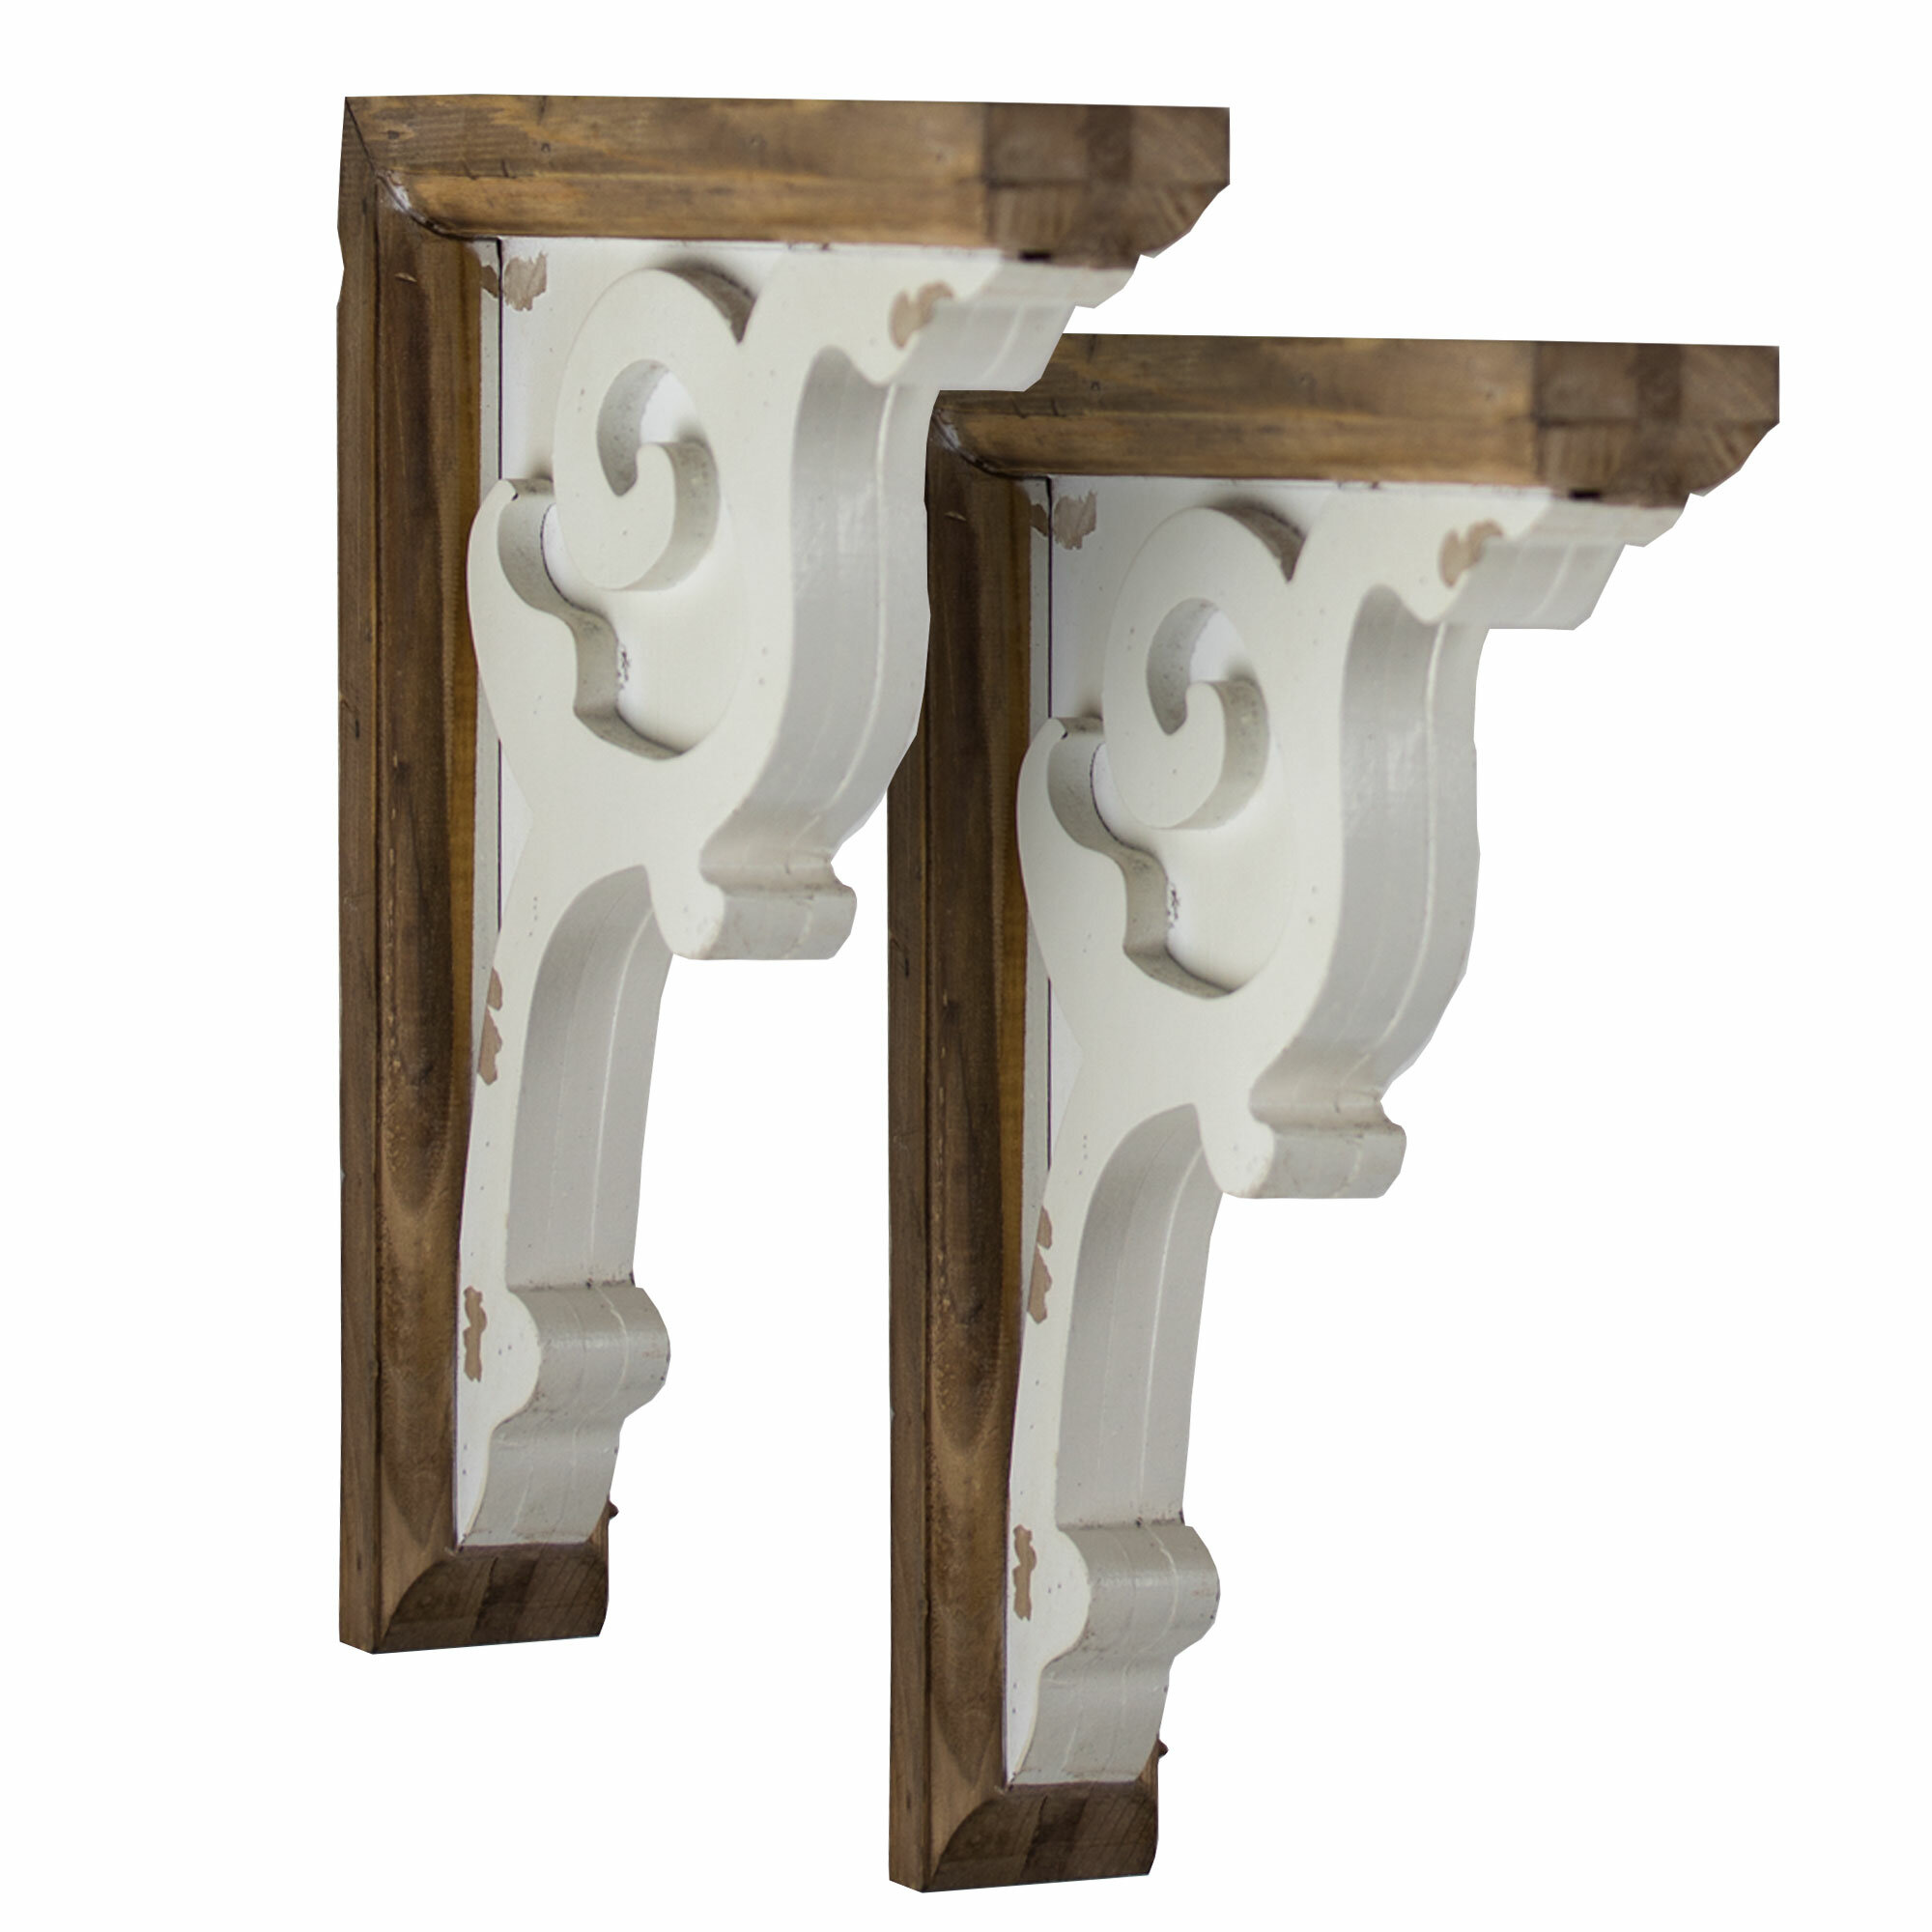 find get brackets deals quotations wooden shelf guides cheap wood rustic solid industrial with shopping modern on metal decorative floating steel